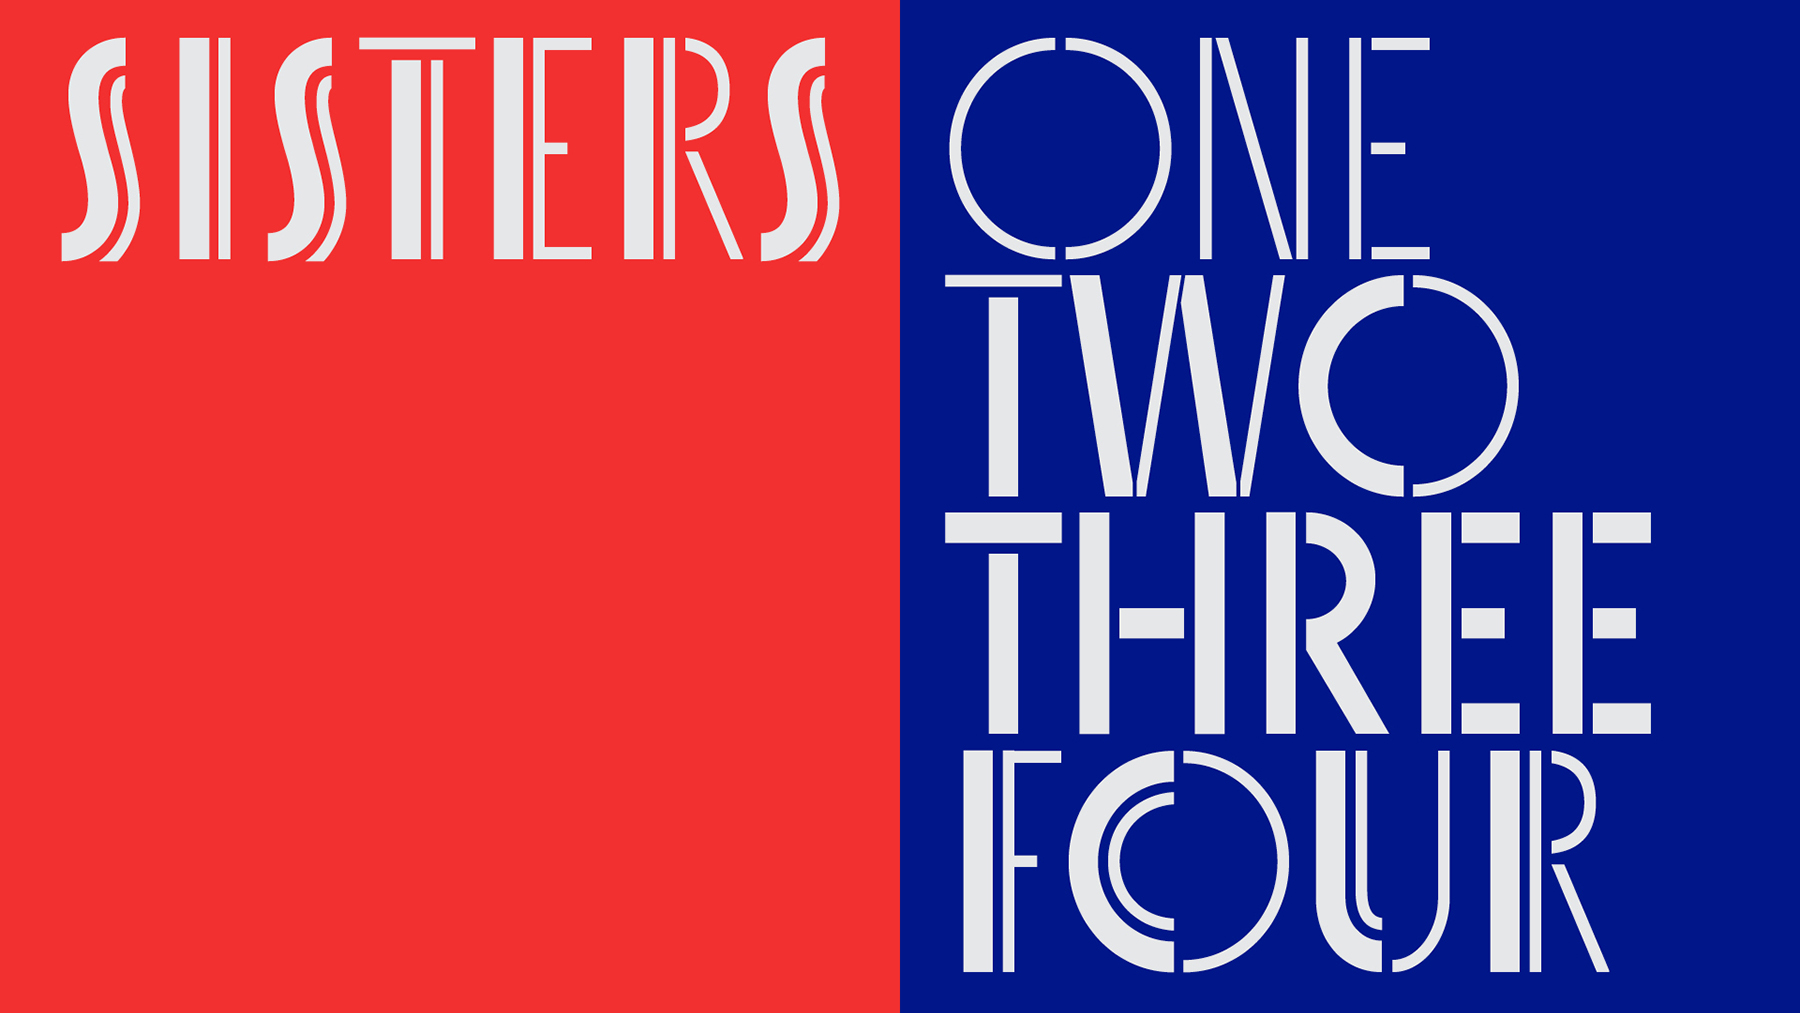 Retail Type Design: Sisters